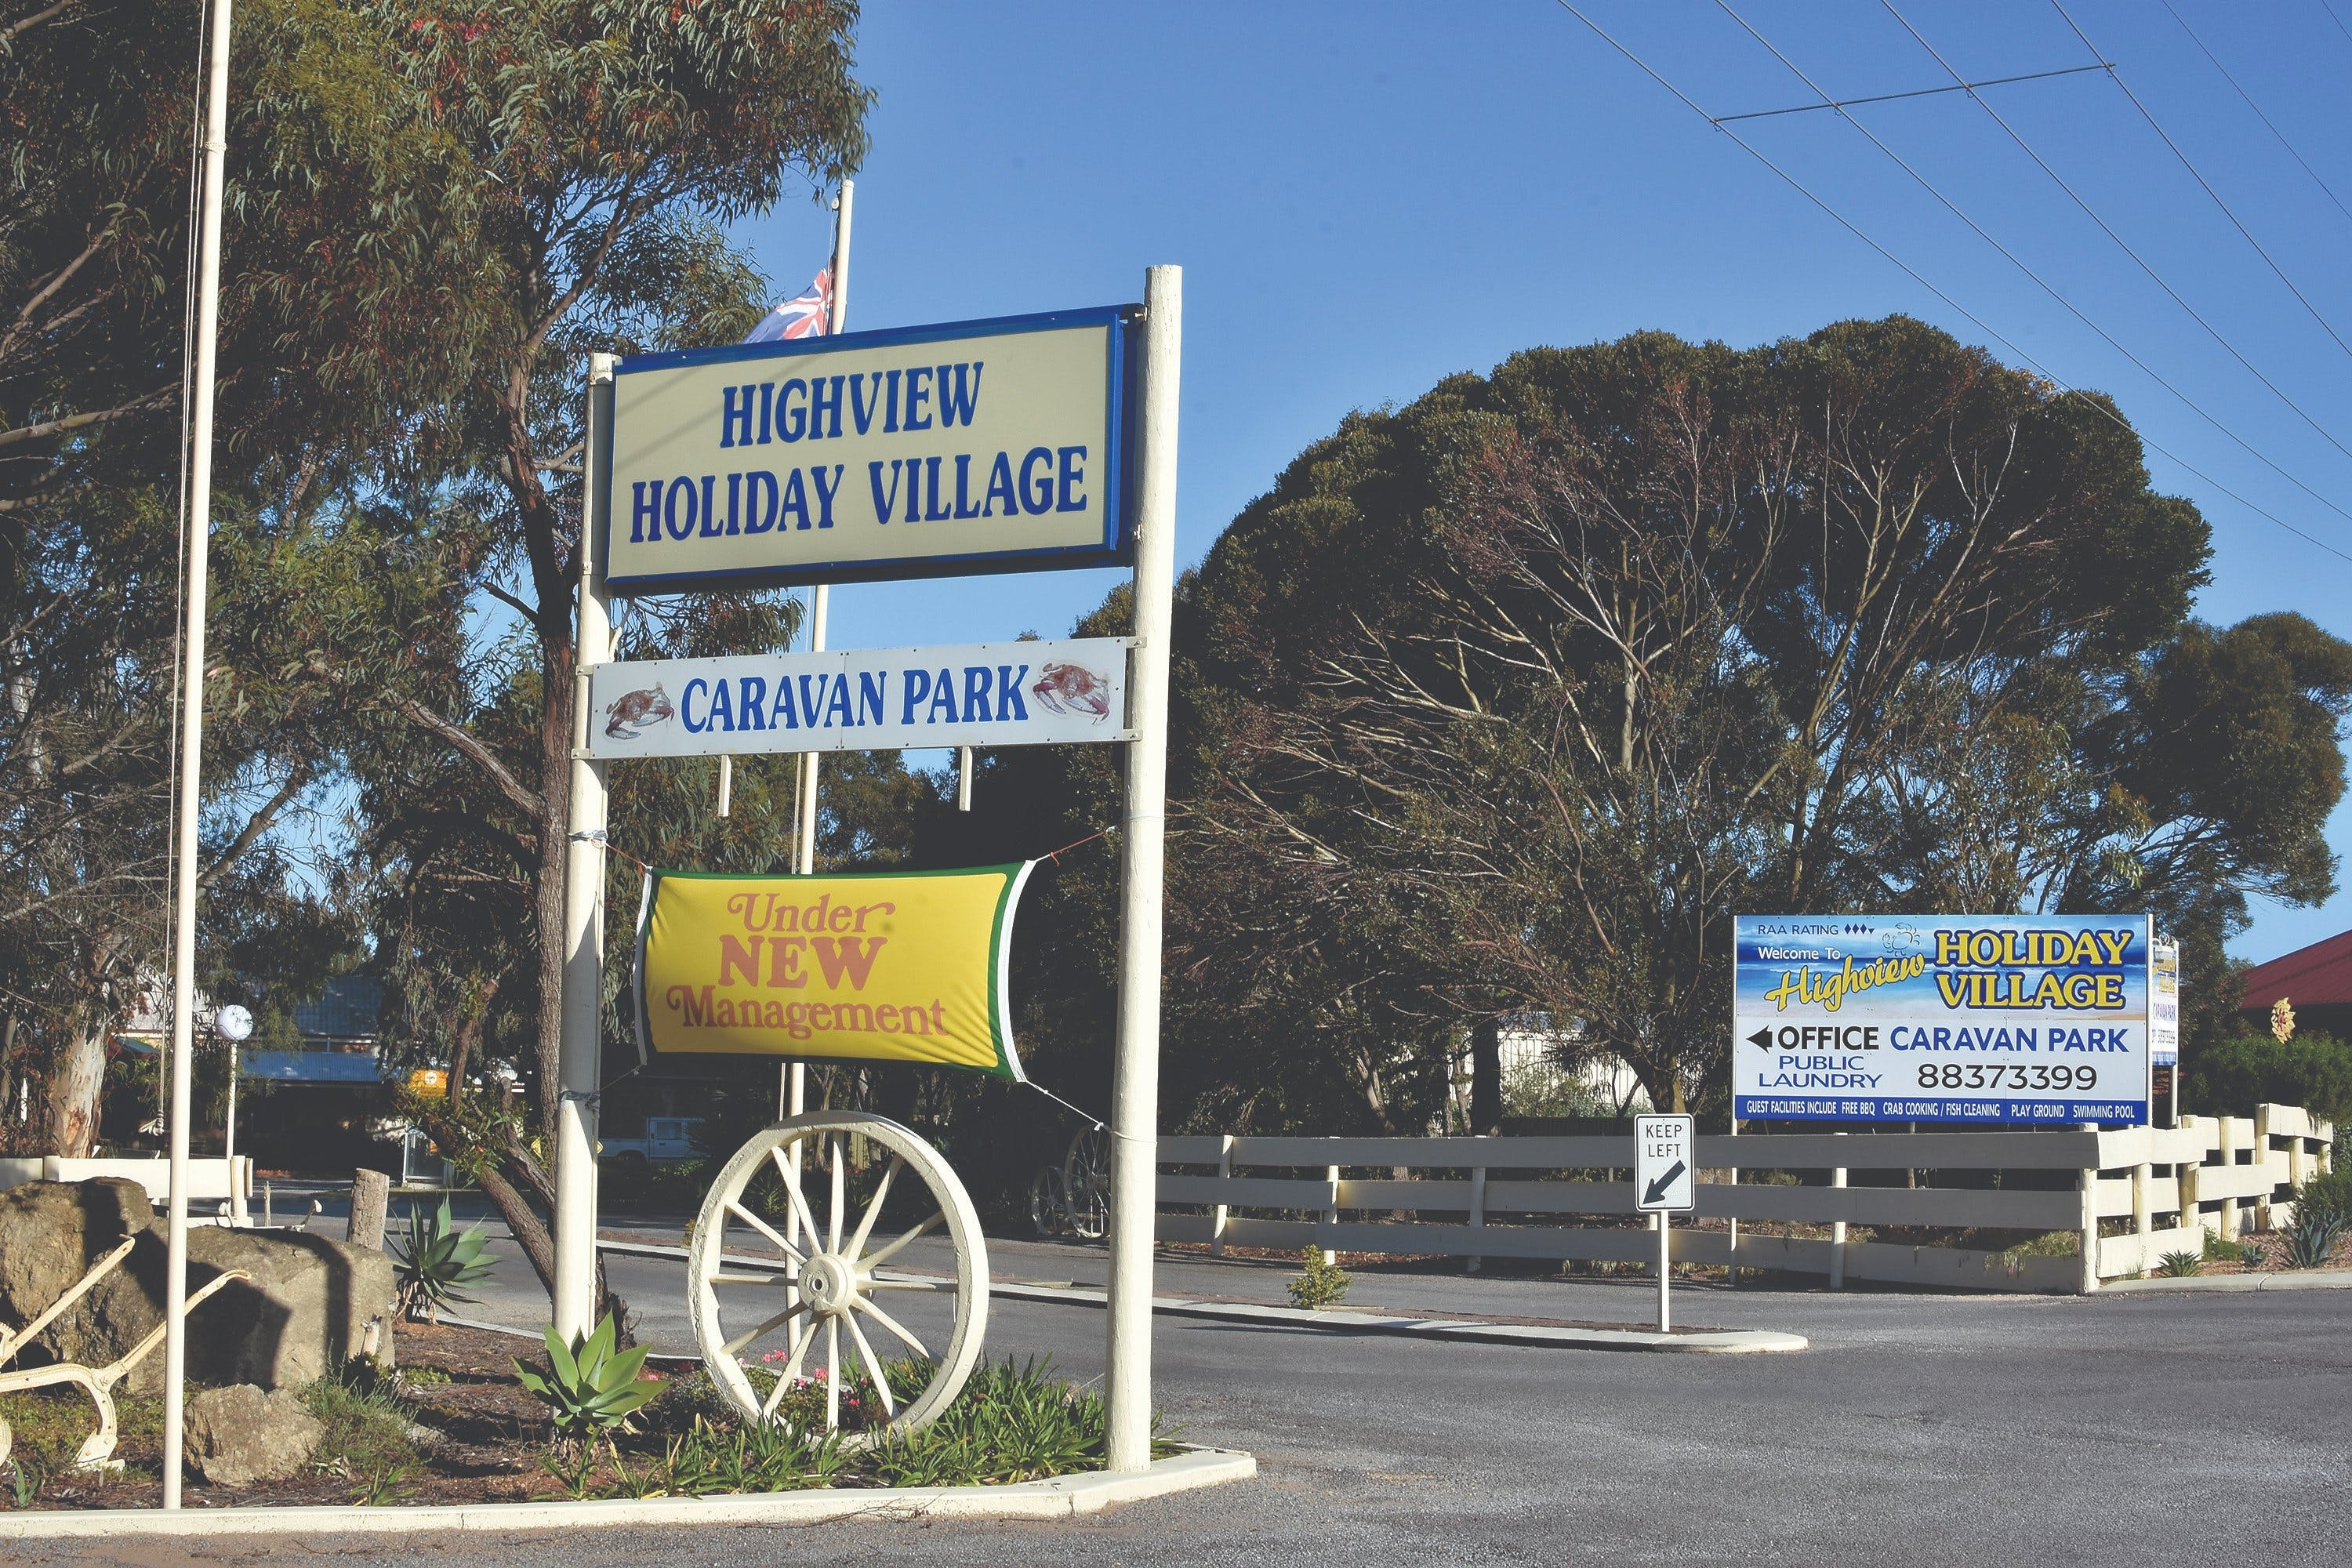 ARDROSSAN - Highview Holiday Village - Carnarvon Accommodation